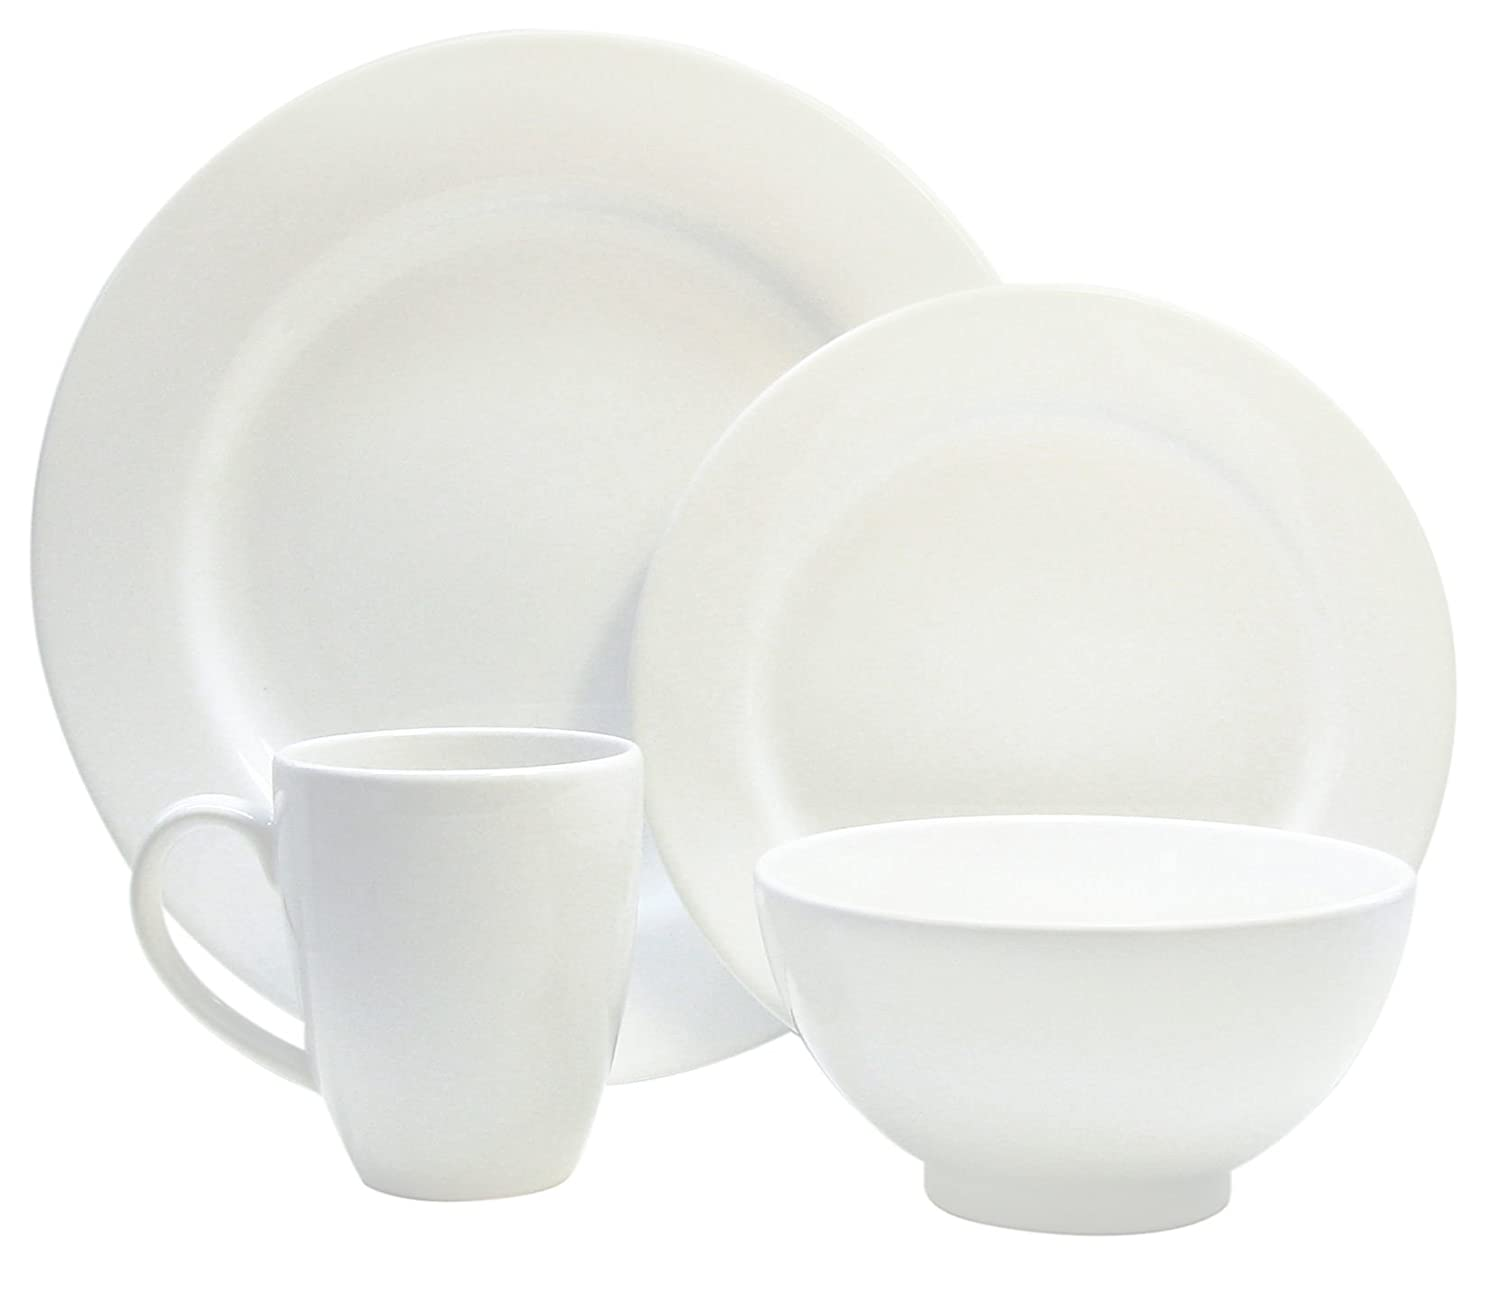 Amazon.com | Waechtersbach Fun Factory II White 16-Piece Dinnerware Set Service for 4 White Dishes Dinnerware Sets  sc 1 st  Amazon.com & Amazon.com | Waechtersbach Fun Factory II White 16-Piece Dinnerware ...